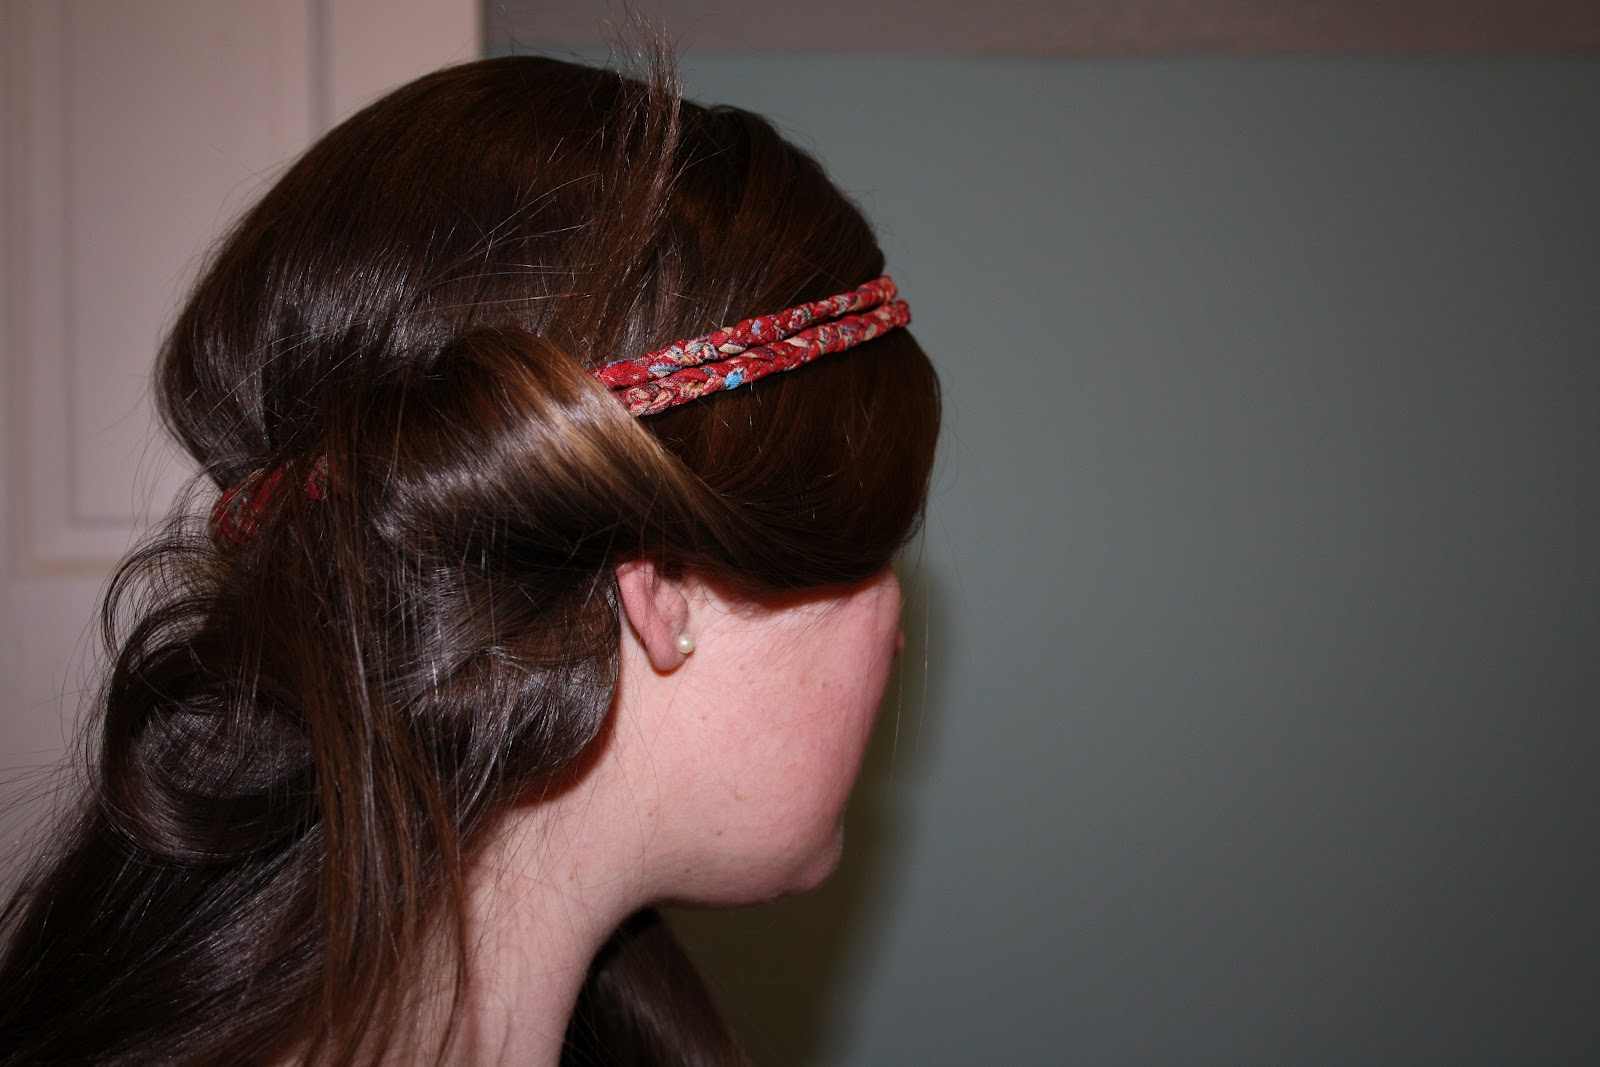 how to get the hair under a headband out